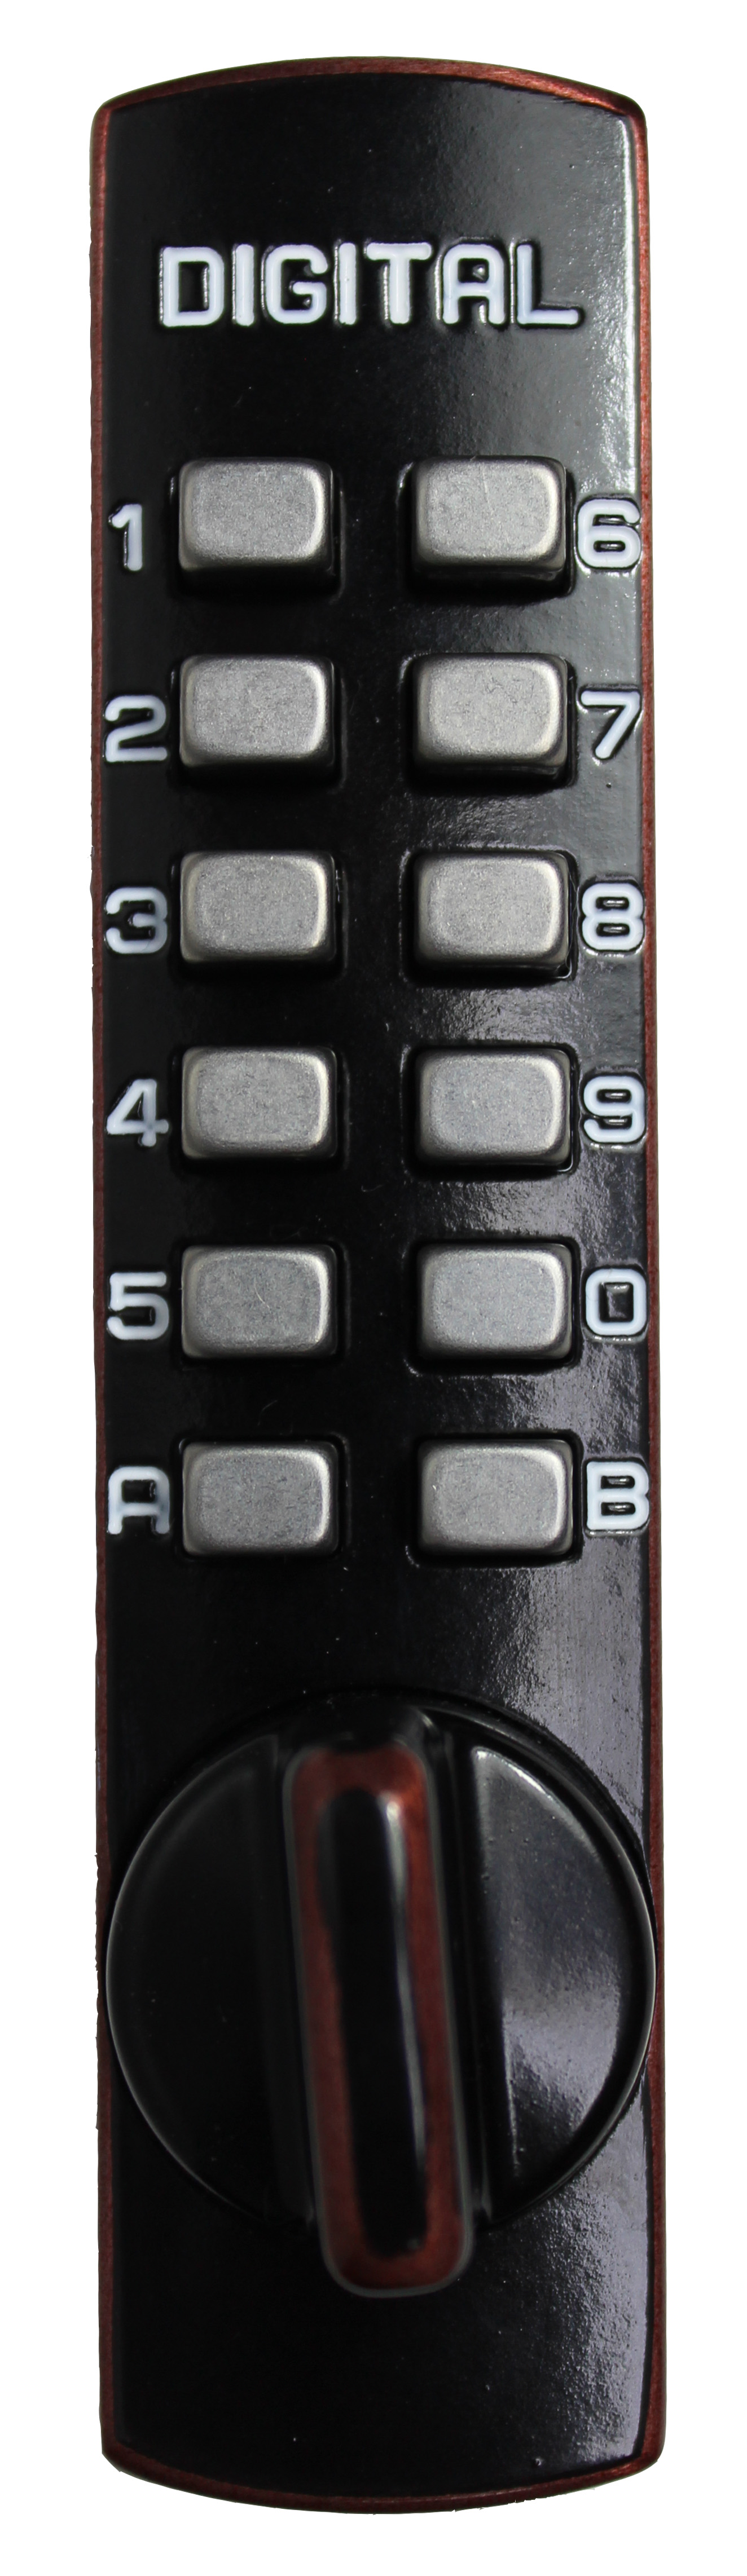 Lockey Style C150 Hook Bolt Keyless Digital Combination Lock